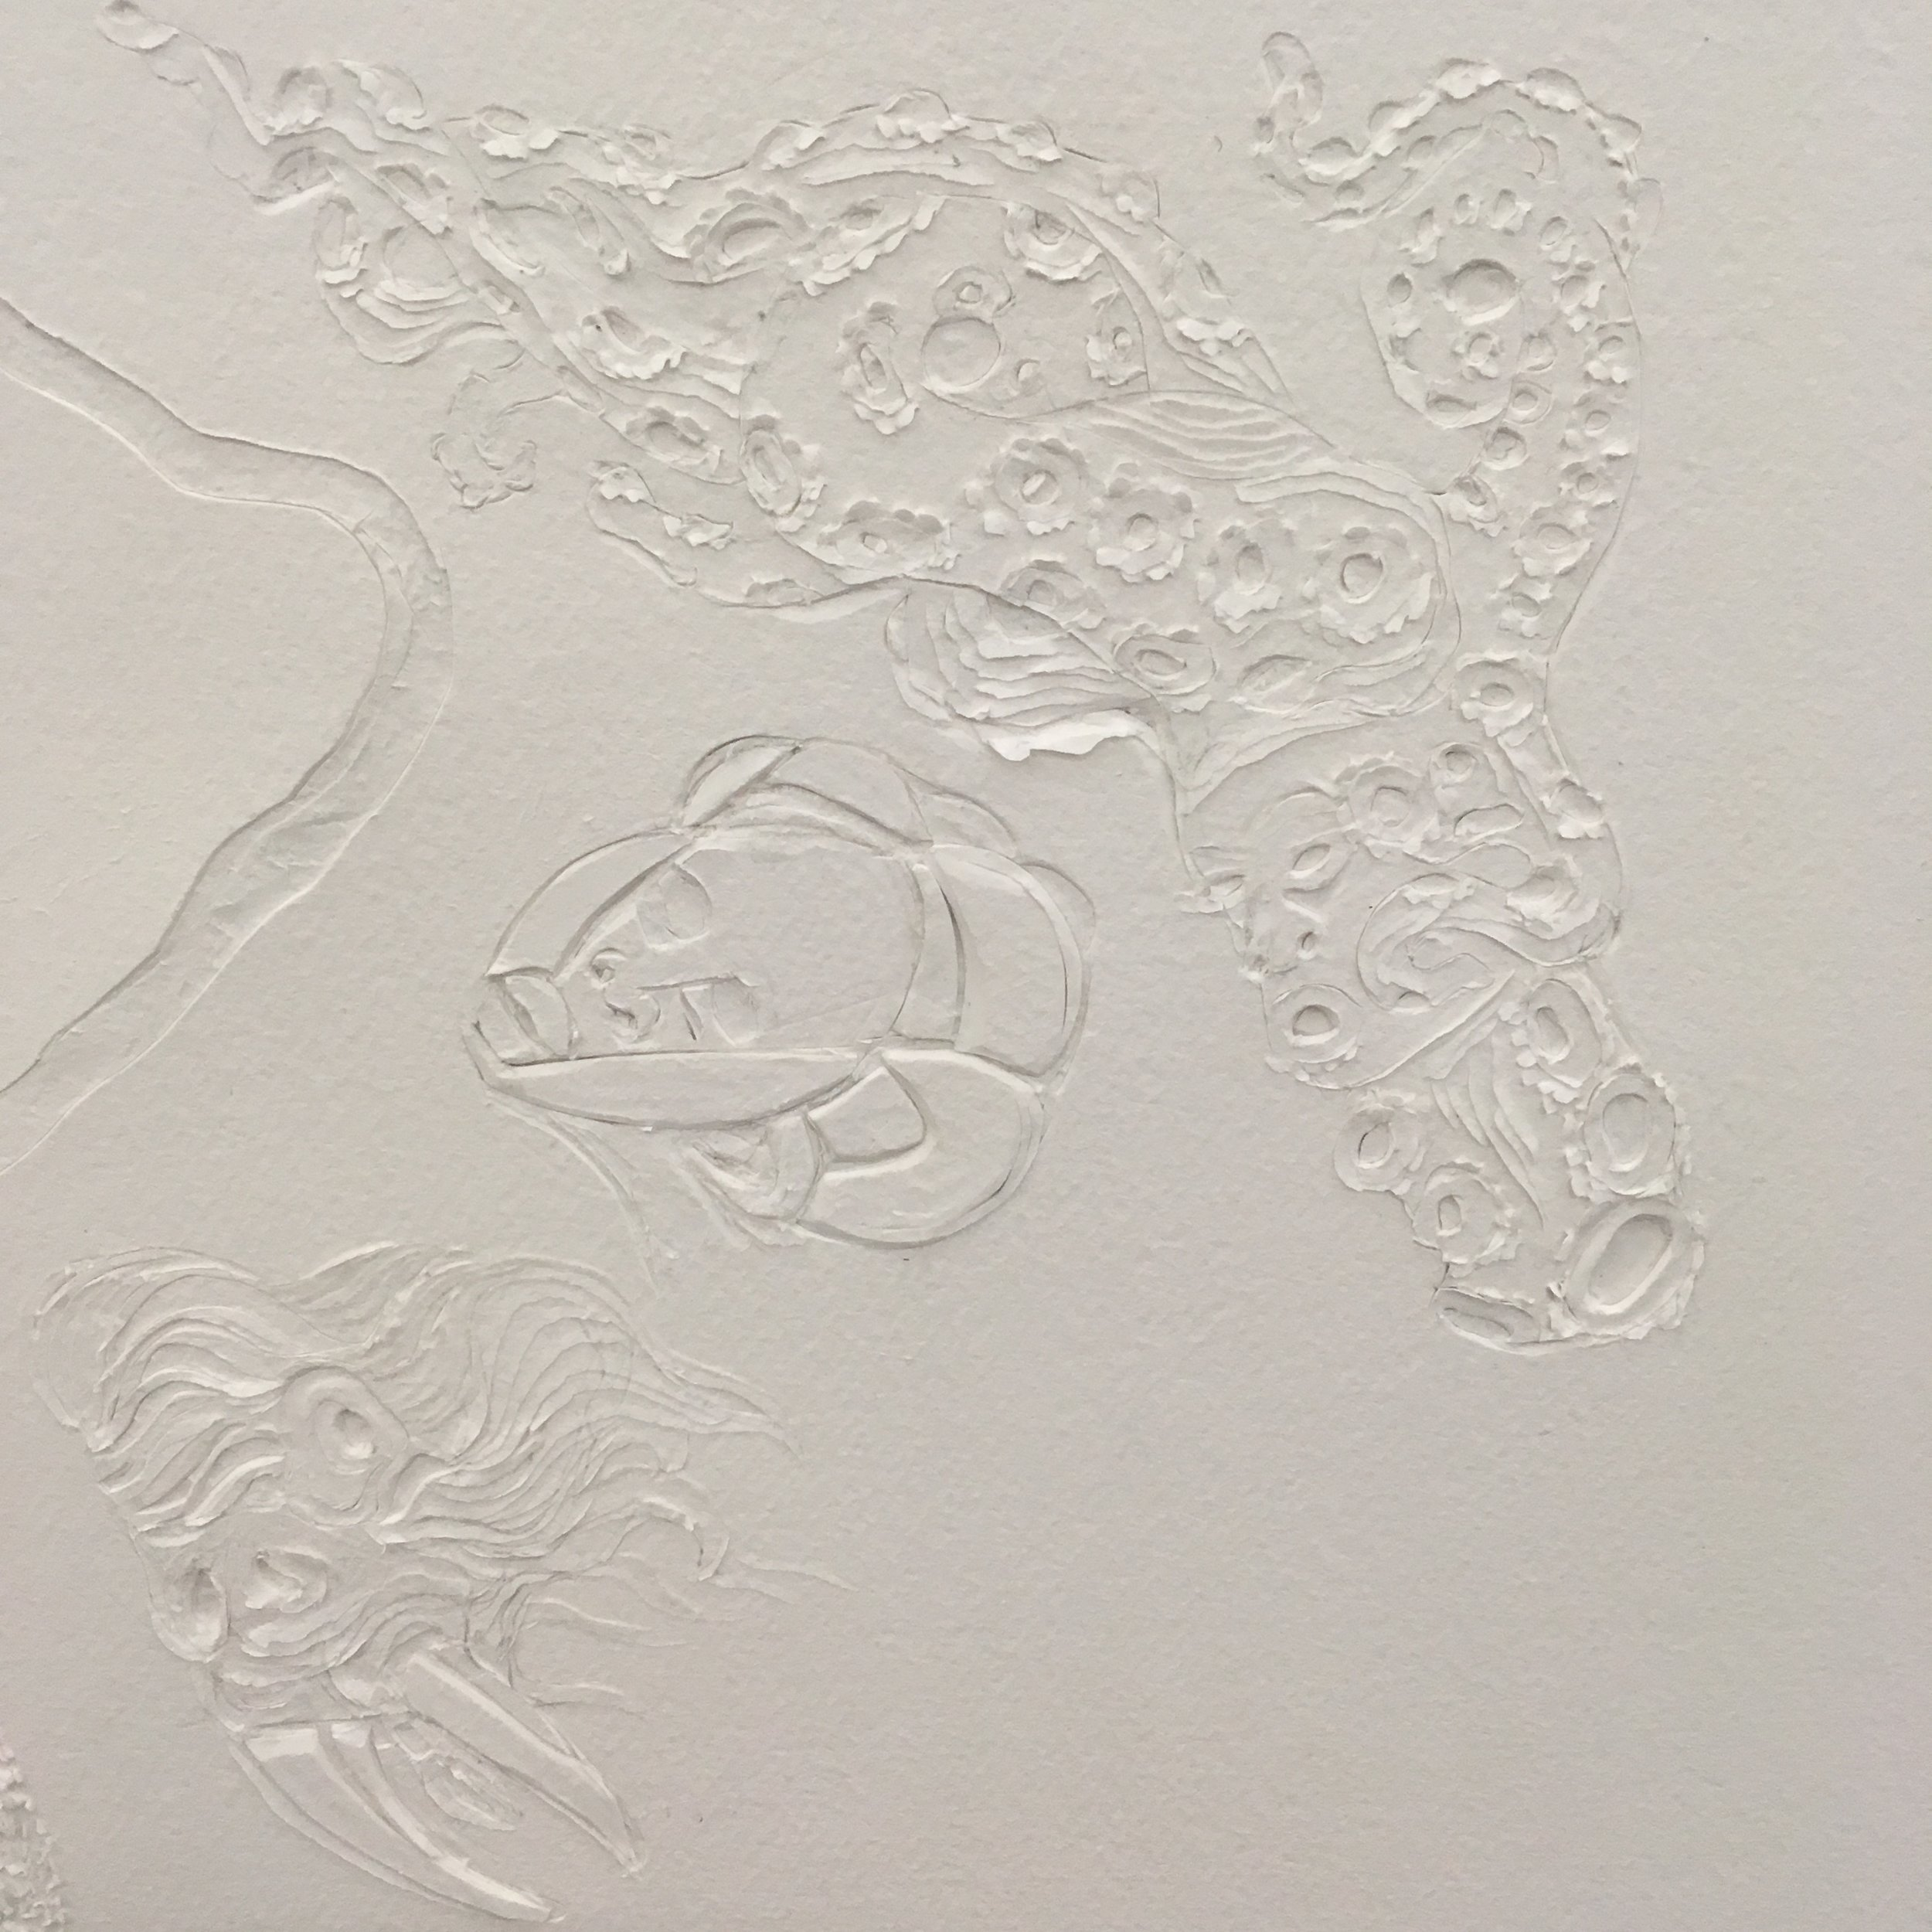 Ellen Gallagher, Watery Ecstatic, 2017 (detail)